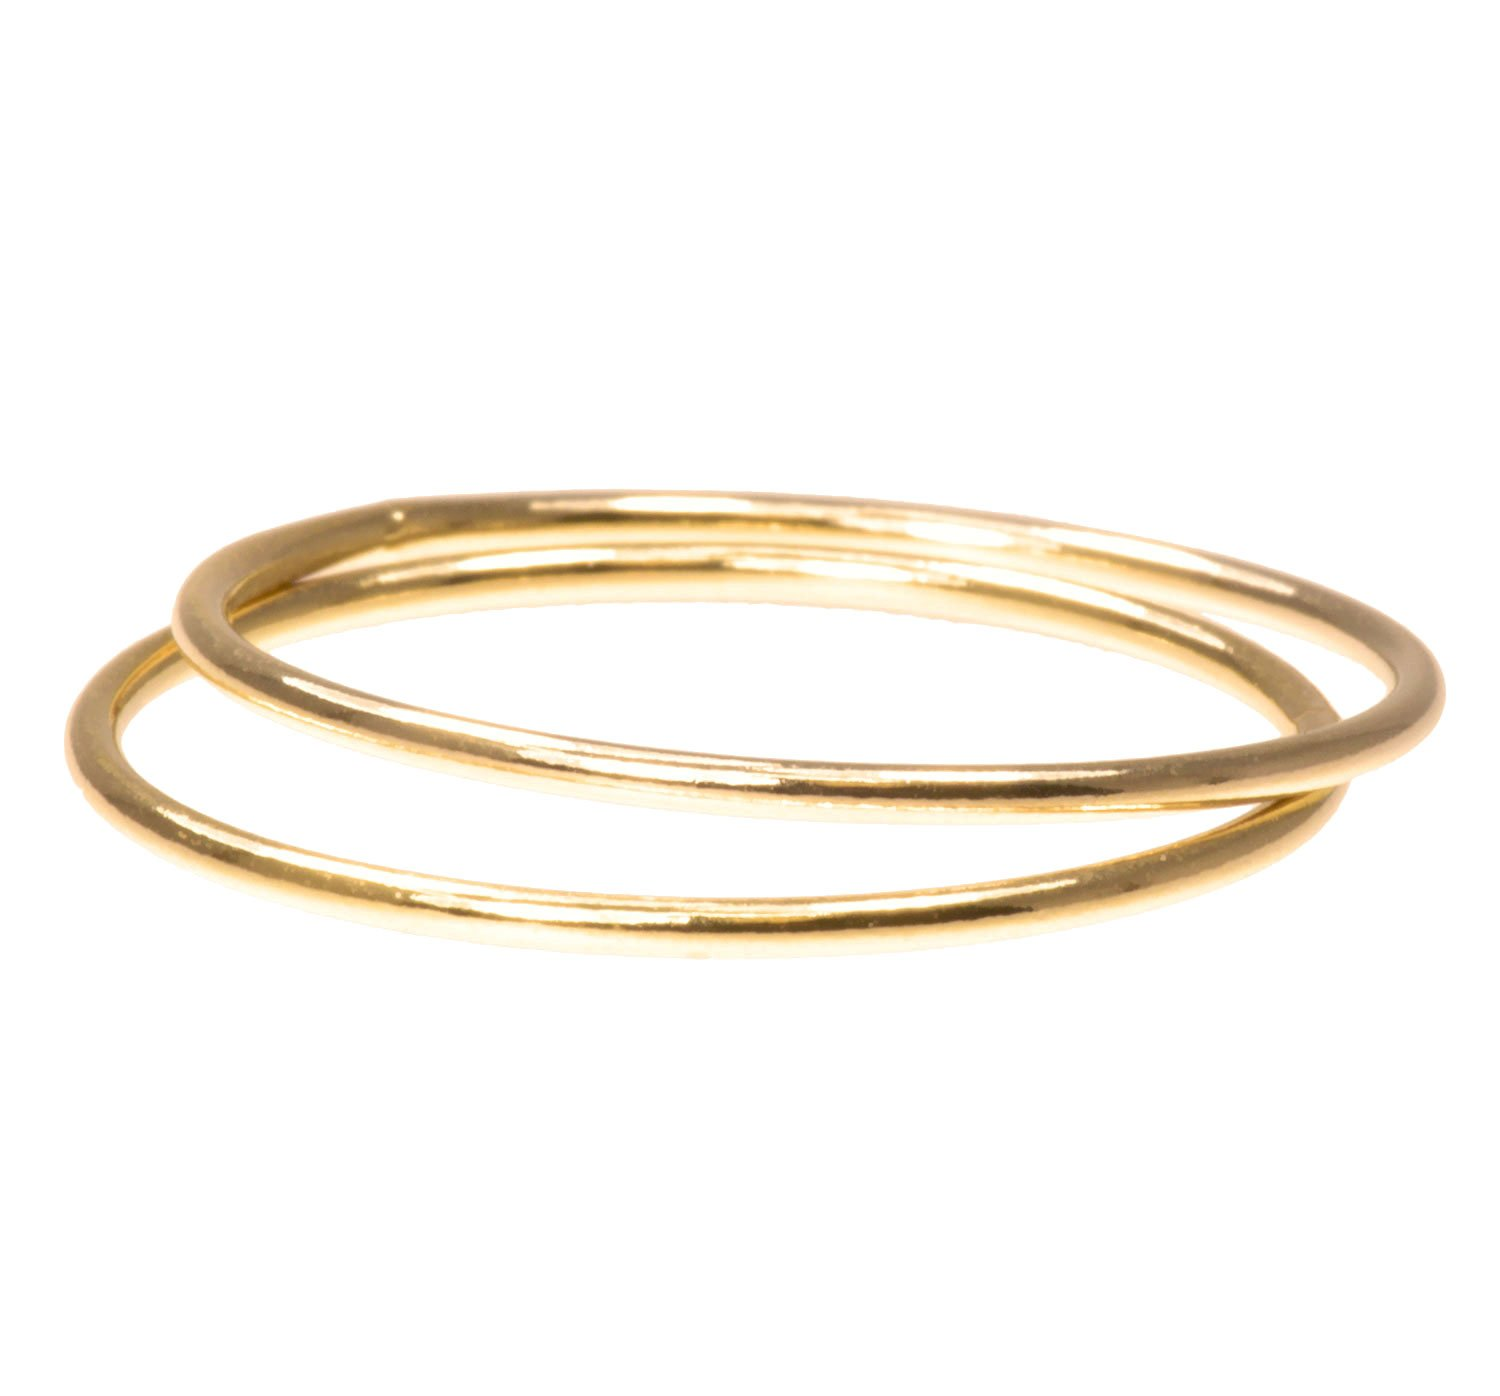 14K Gold Stacking Rings 1mm Round